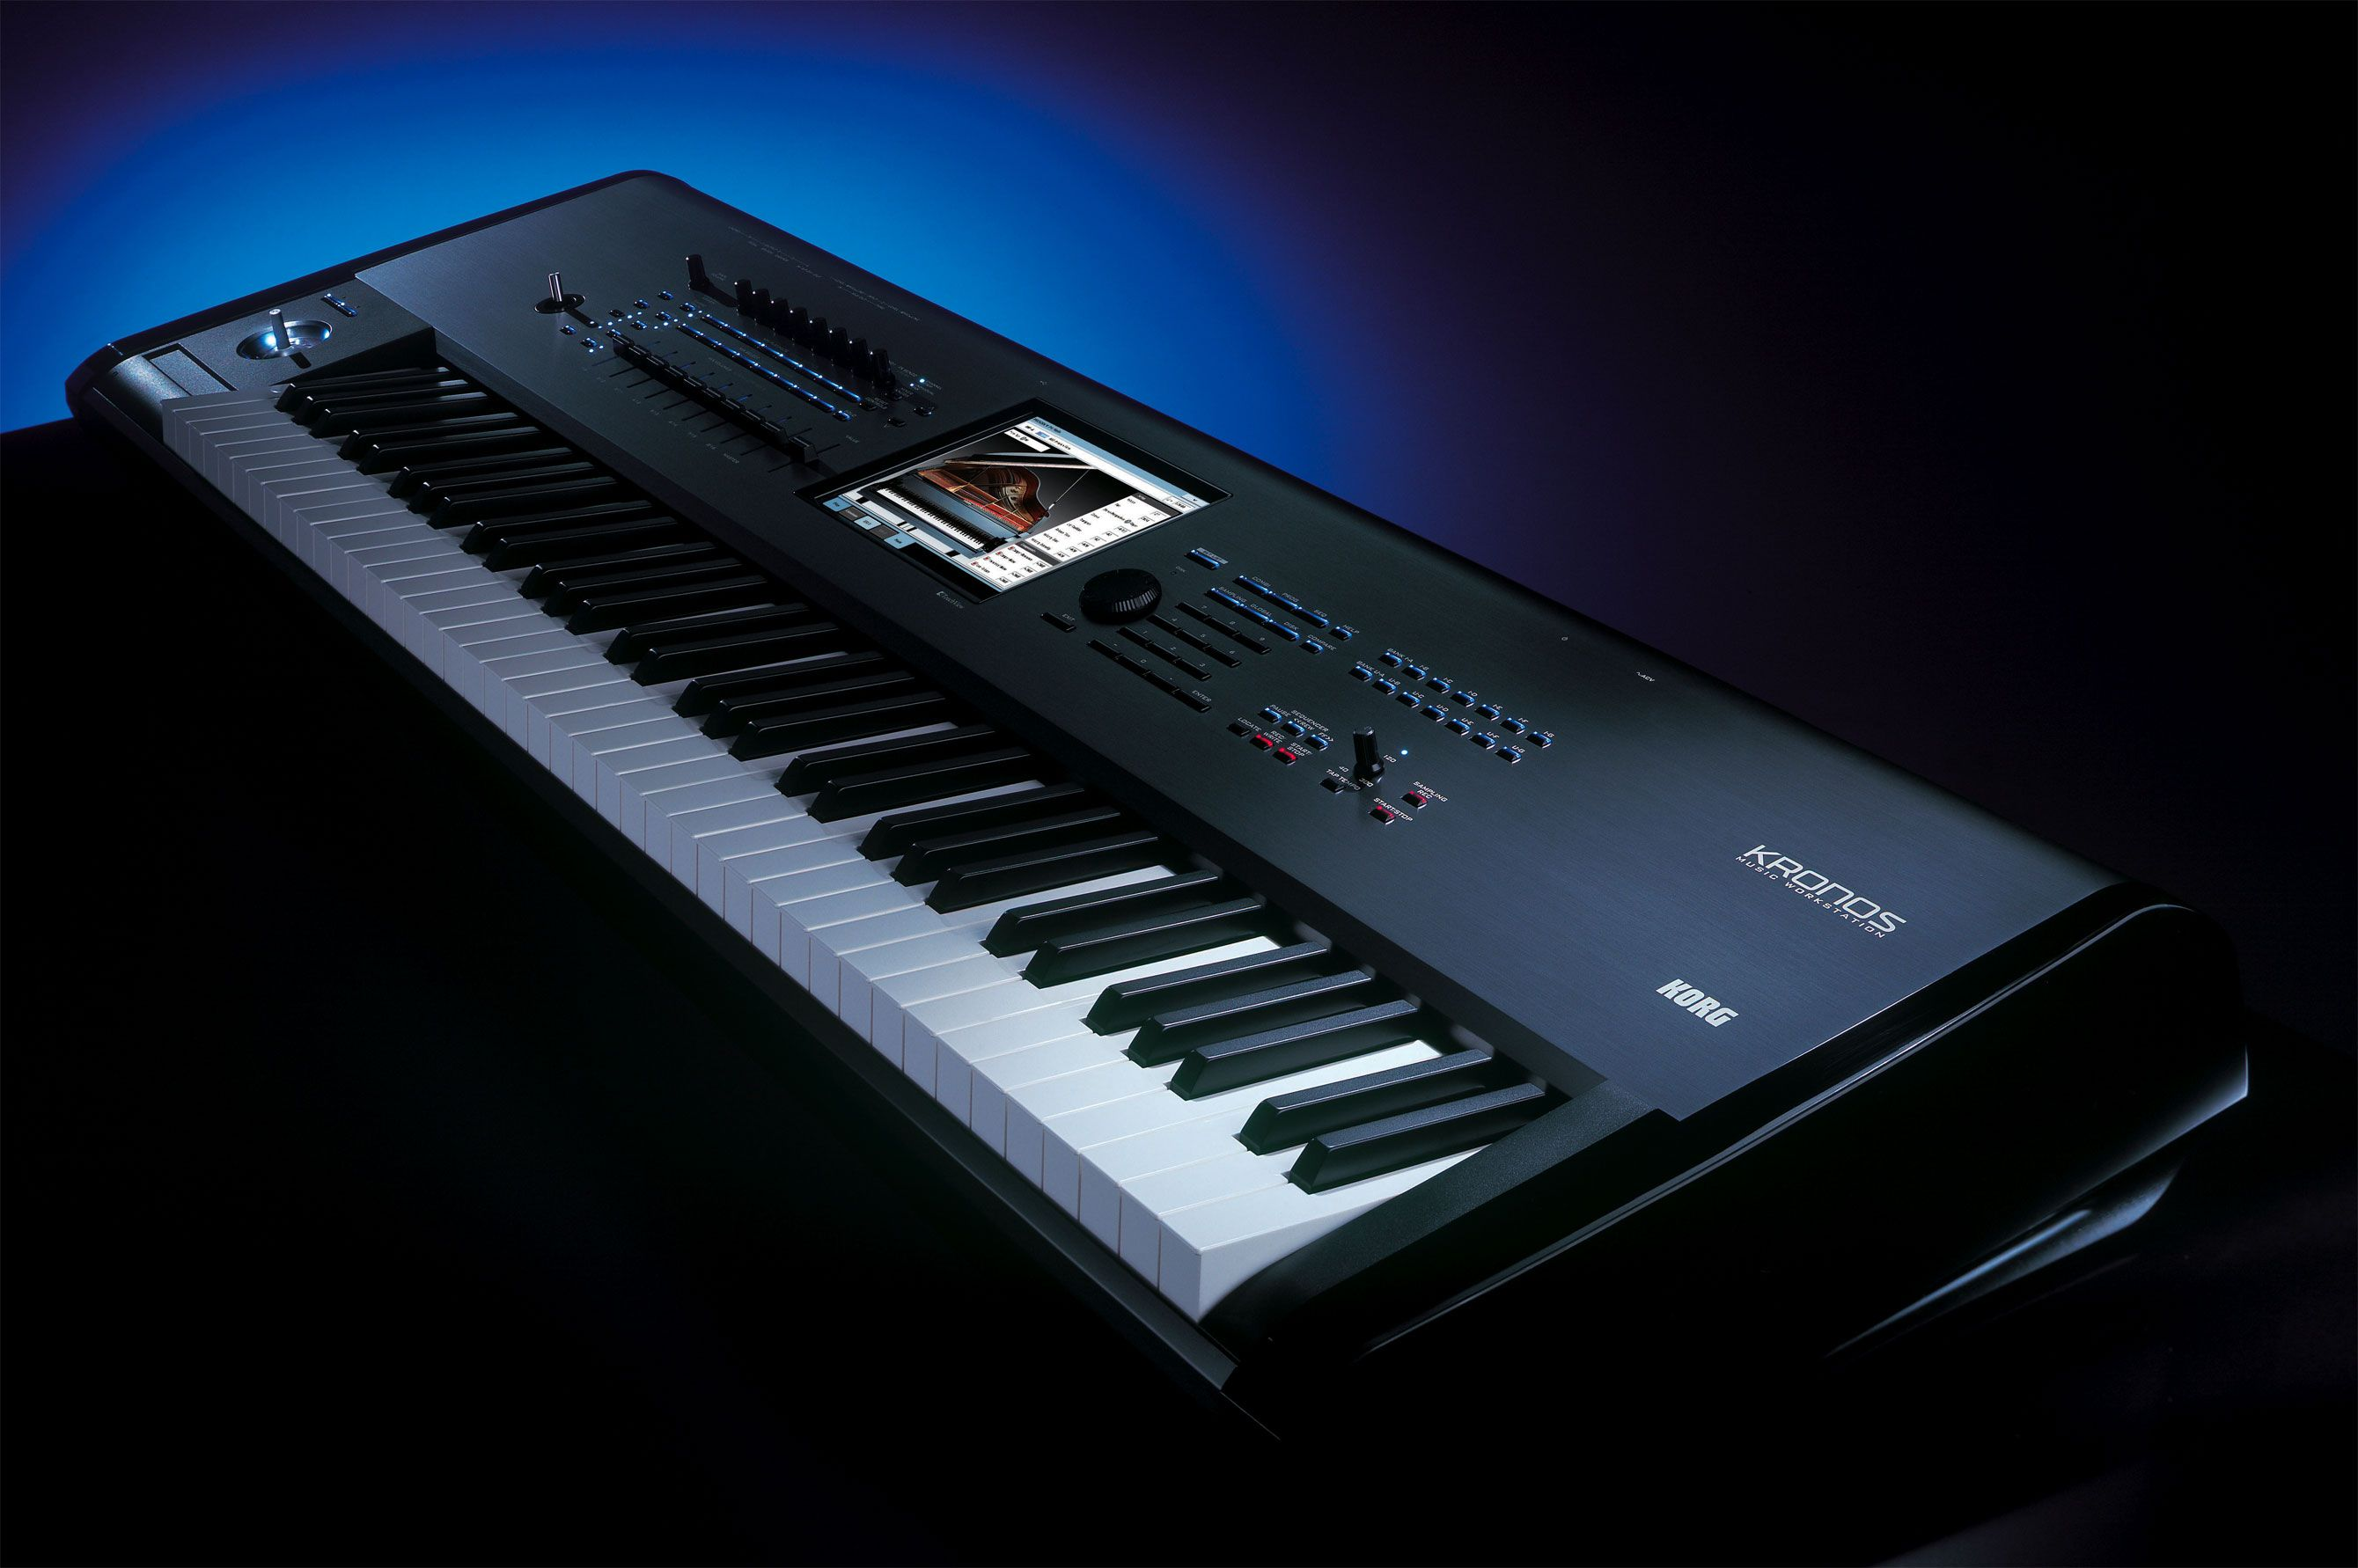 Korg Kronos X Music Workstation Launched